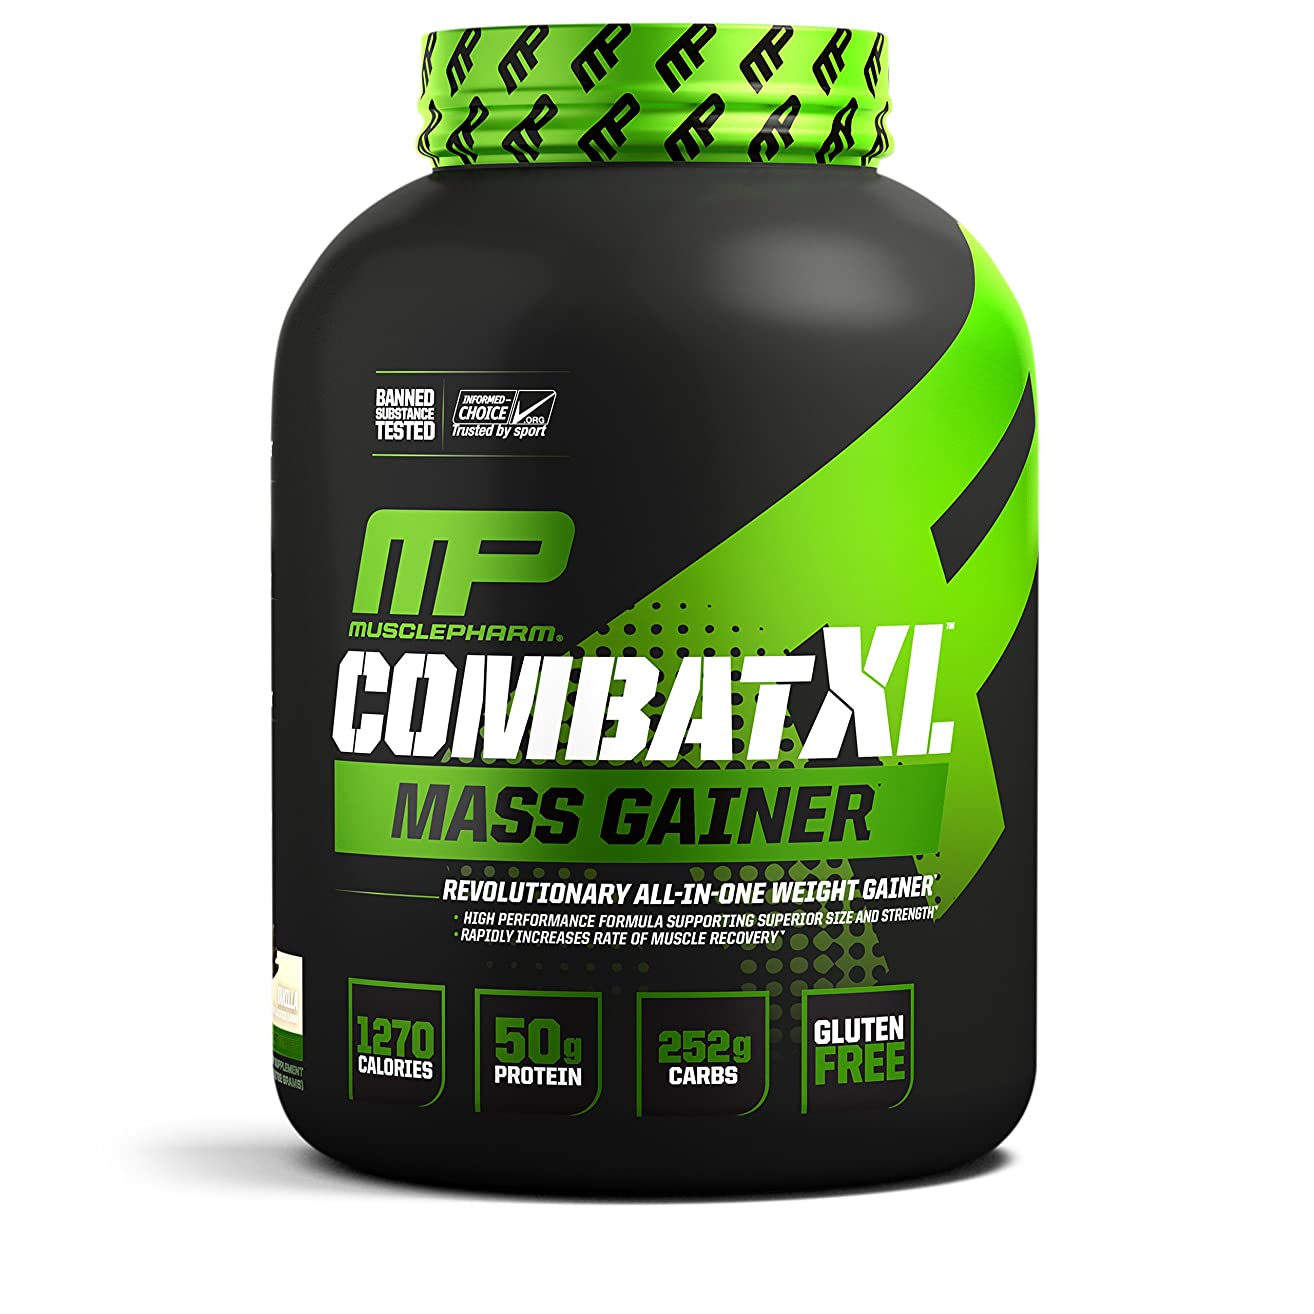 MusclePharm Combat XL Mass-Gainer Powder, Weight Gainer Protein Powder, 1270 Calories per Serving, 50 Grams of Protein, MCTS Flax and Chia Seeds, Vanilla, 6-Pounds